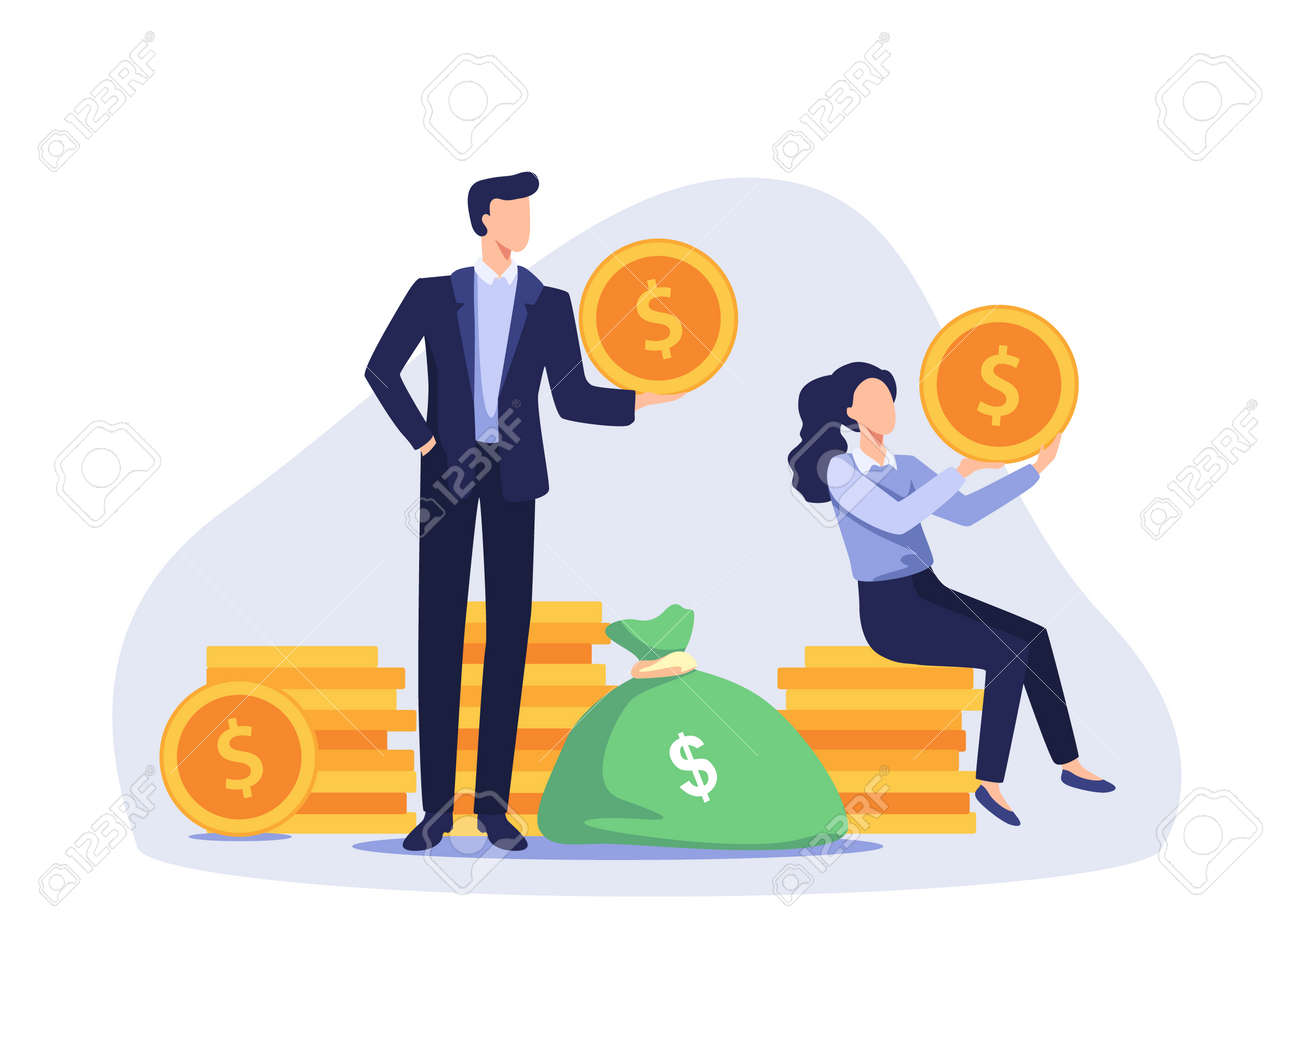 Successful businessman and businesswoman standing and sitting on coins stack. Profitable investment, Stock market income. Vector illustration in a flat style - 166401286